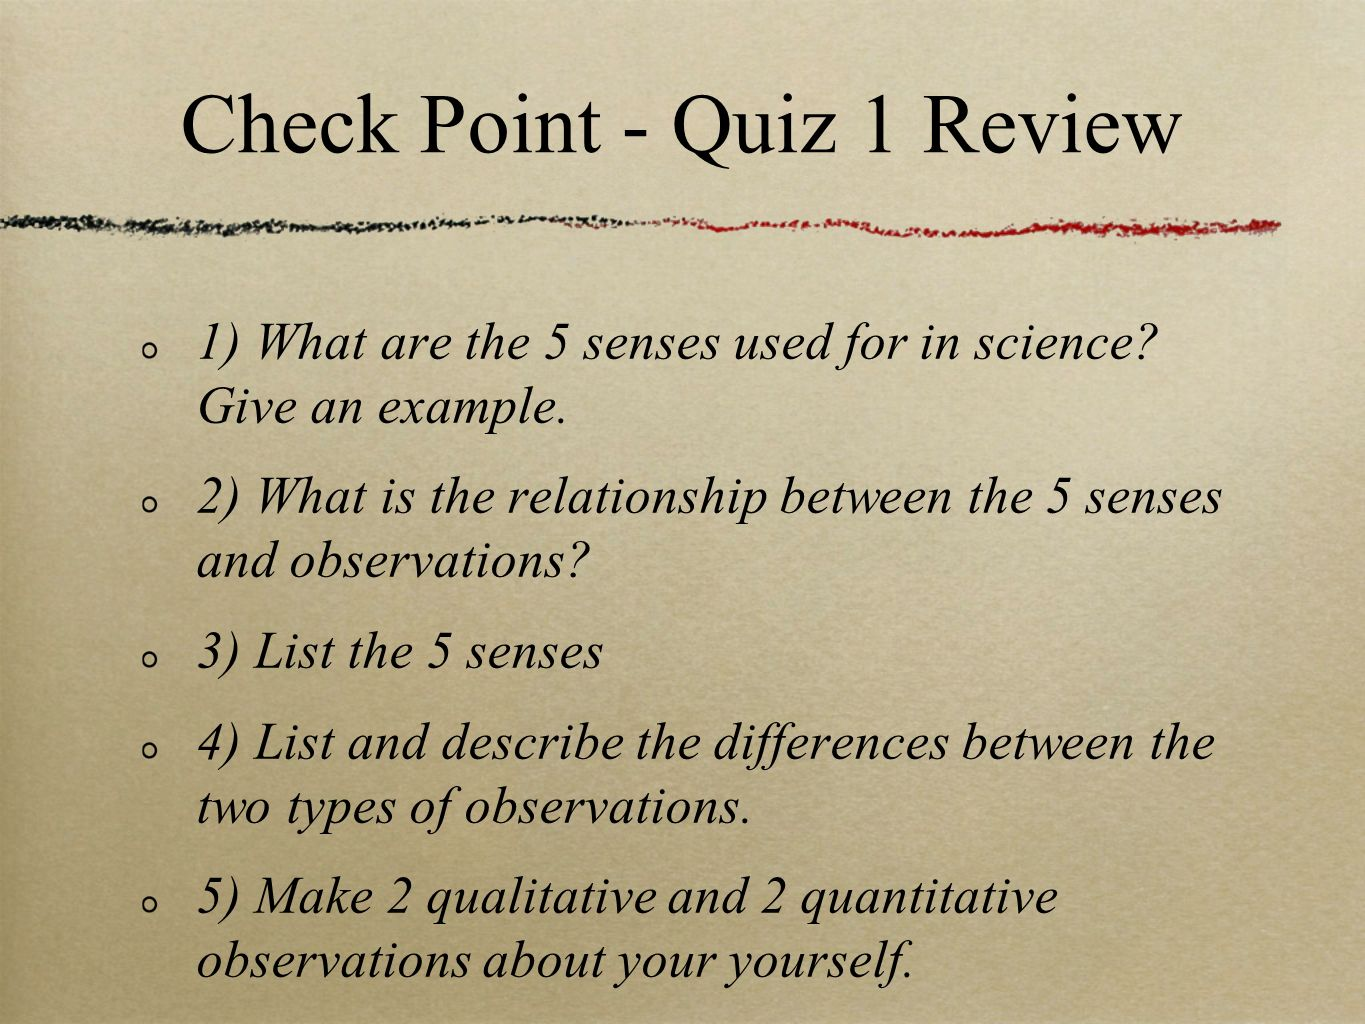 Check Point - Quiz 1 Review